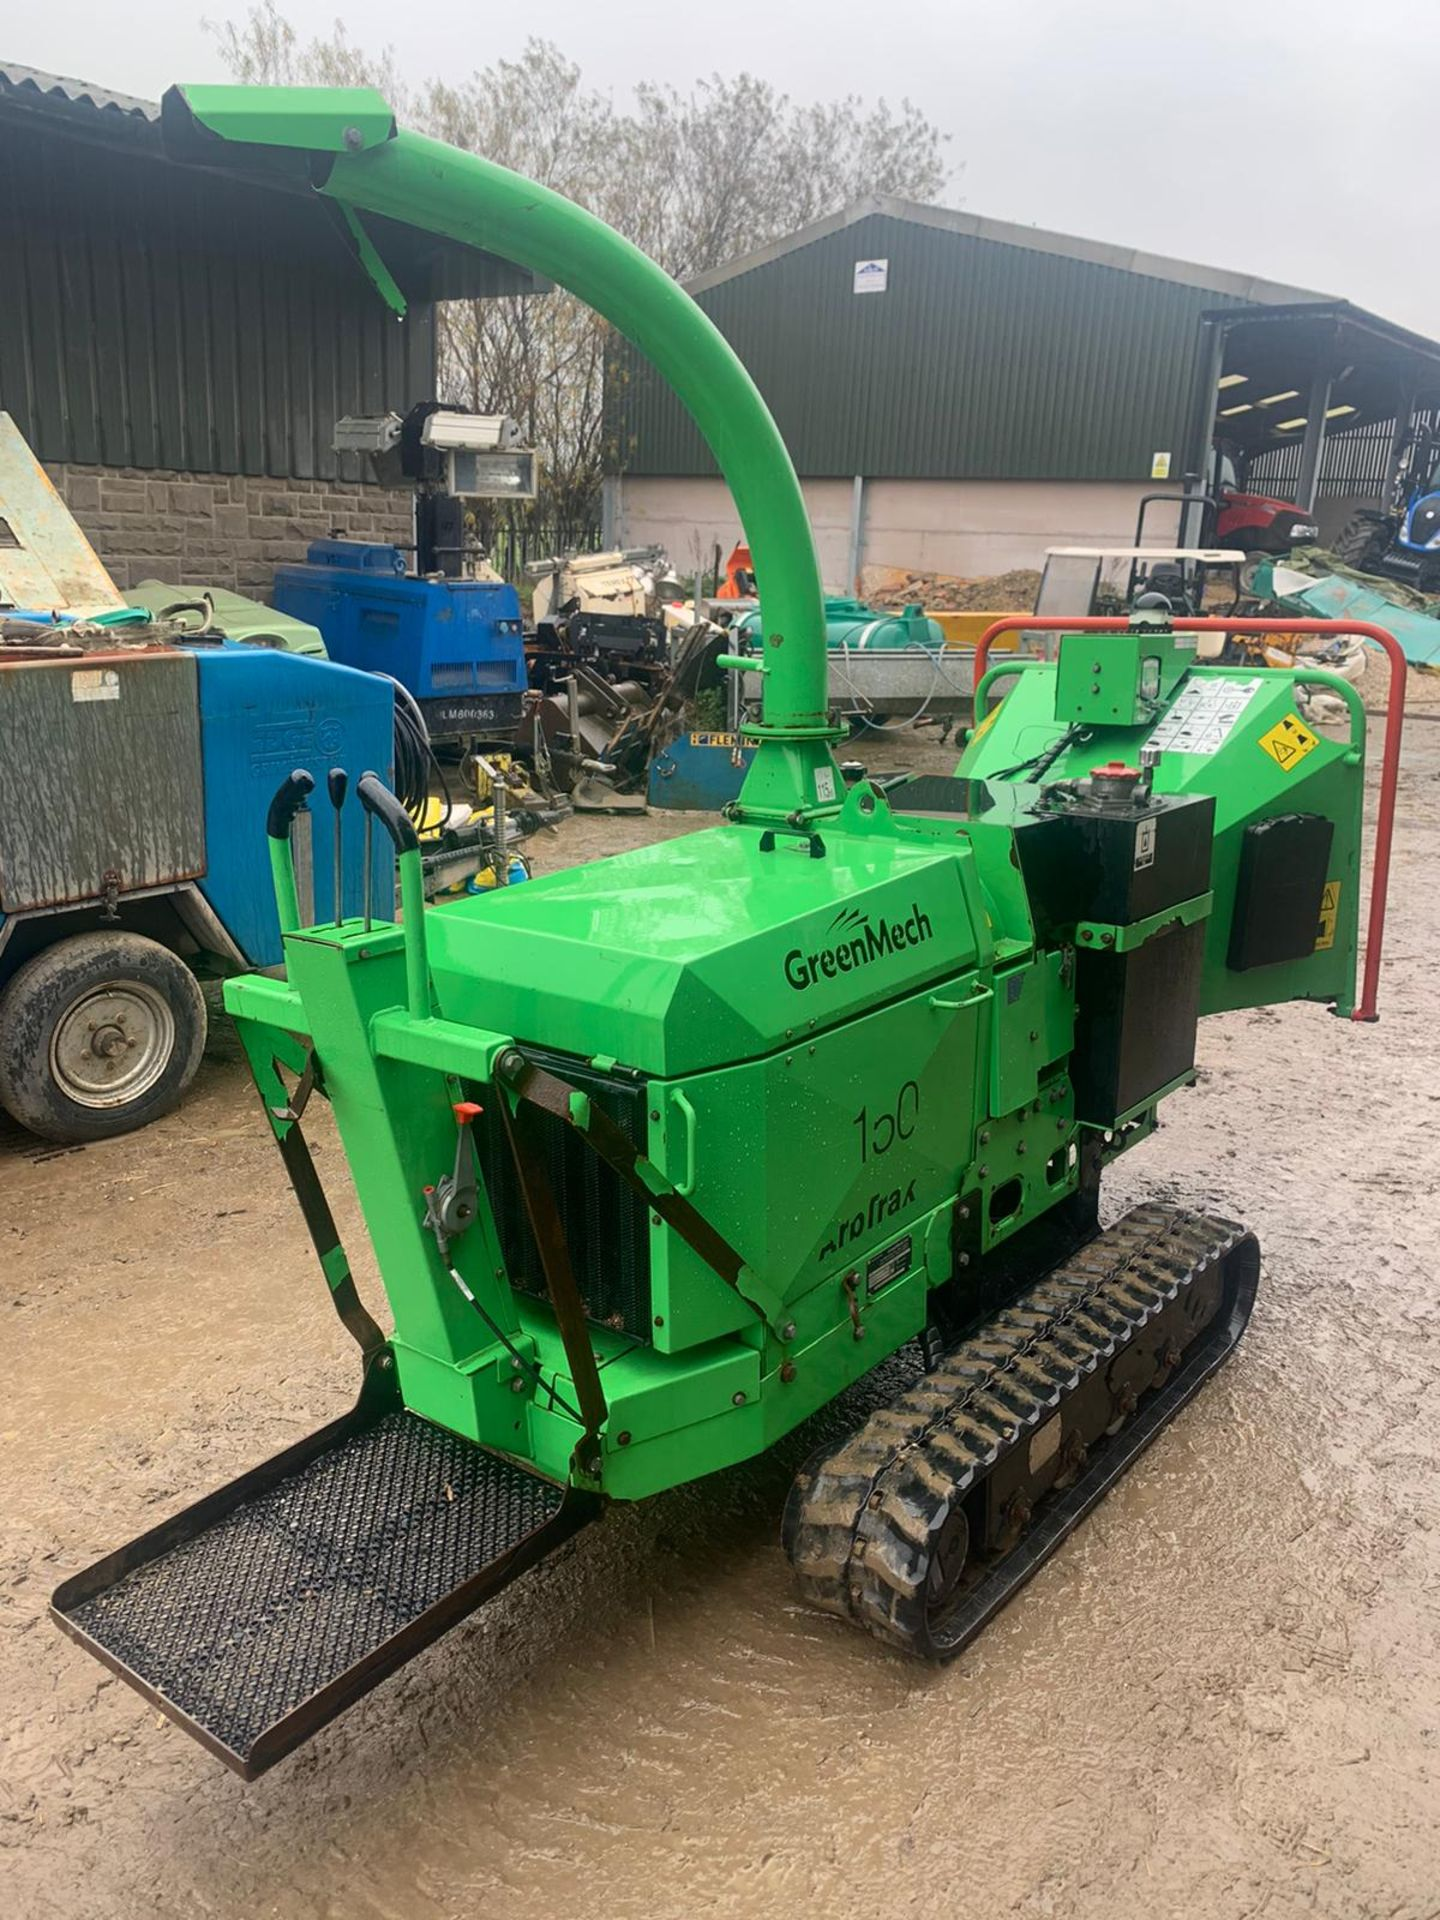 2014 GREENMECH ARB TRACK 150-35 STAND ON / WALK BEHIND WOOD CHIPPER, RUNS, DRIVES & CHIPS *PLUS VAT* - Image 2 of 5